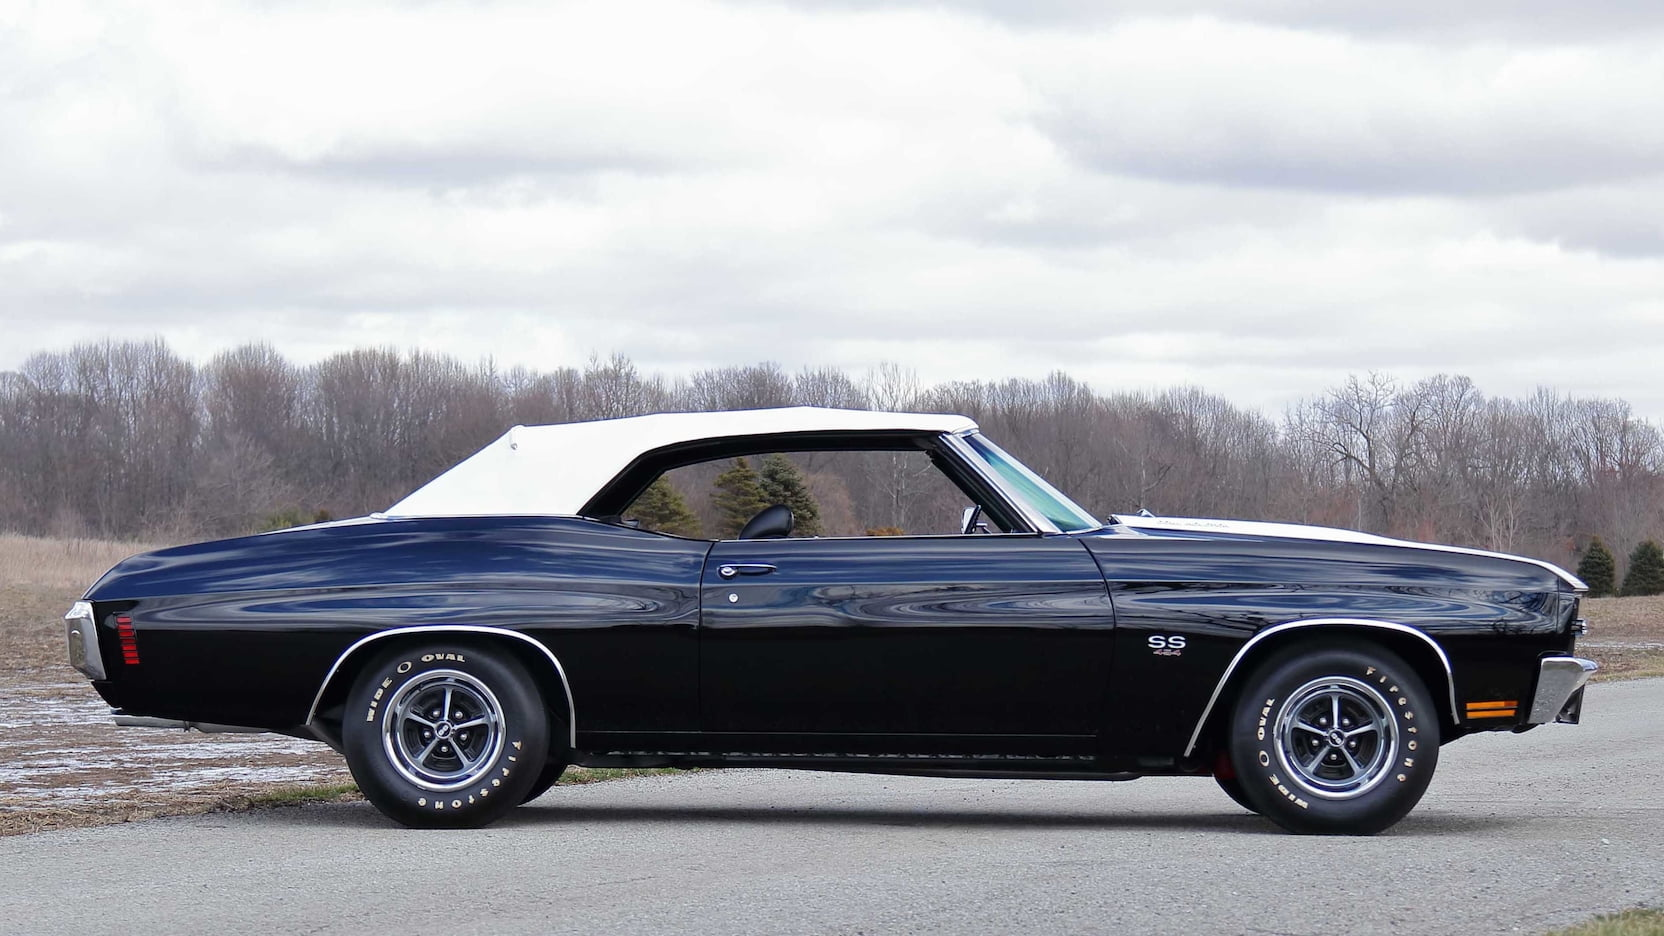 1970 Chevrolet Chevelle LS6 Convertible Side Profile